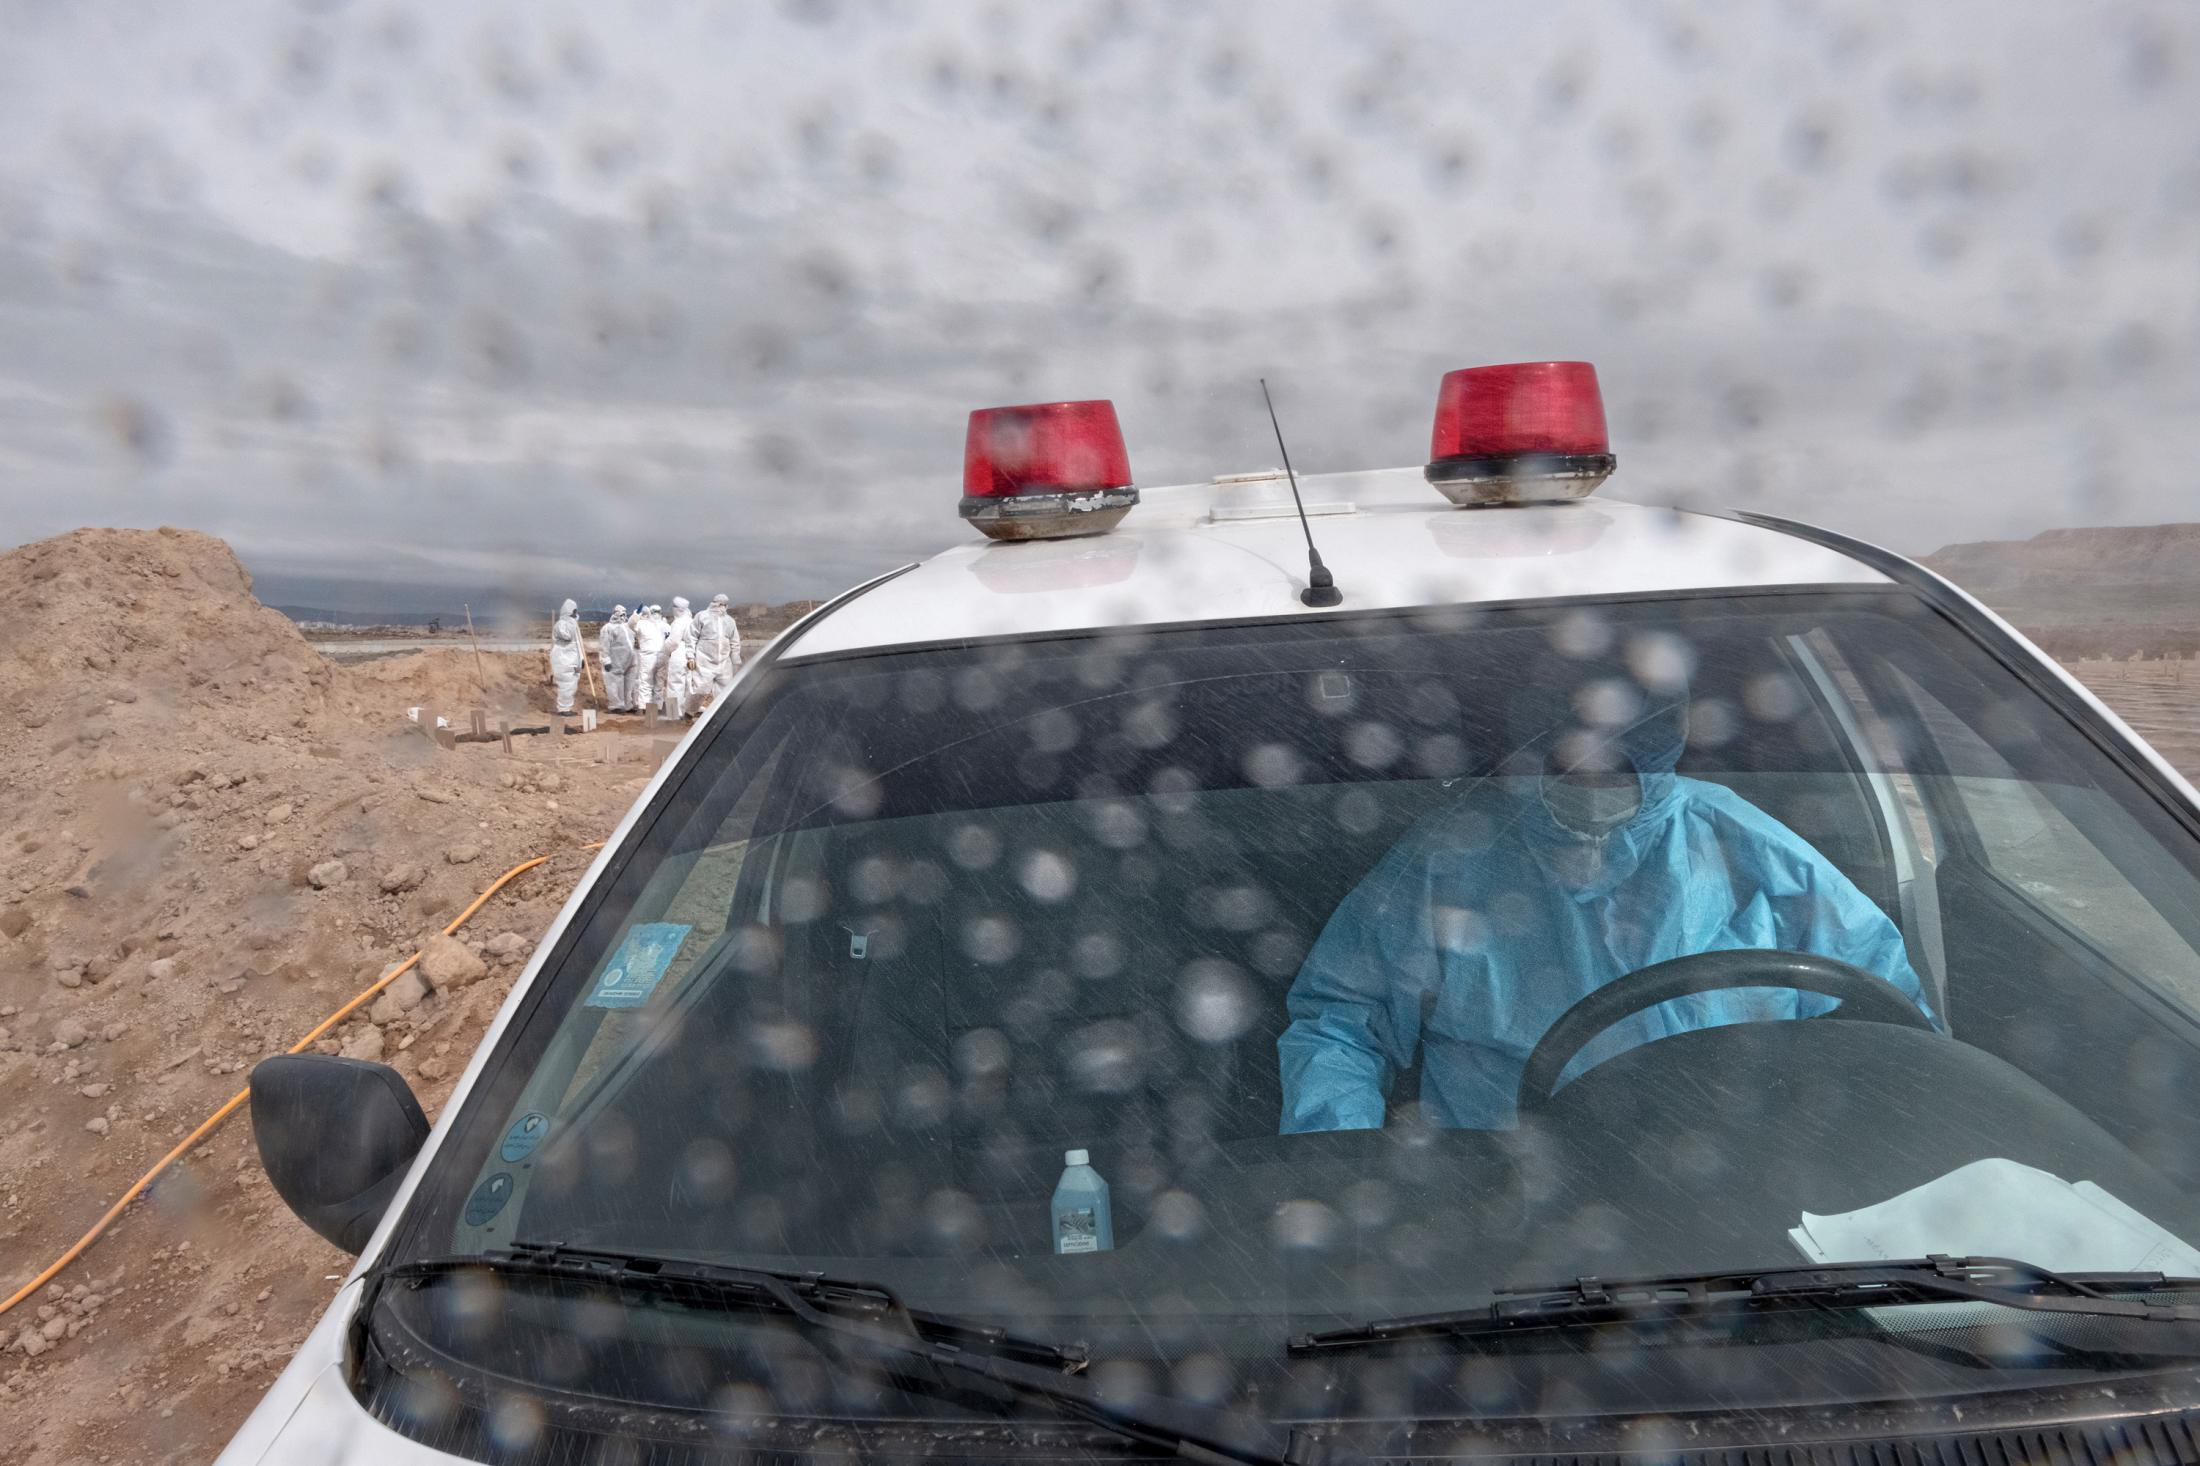 Mr.Anonymous ambulance driver was carrying a victim body to the burial site, where I accompanied him. He said he was unhappy with his job, worried about transmitting the virus to himself or his family, and his workplace was stressful, too. He says the outbreak of the coronavirus has made the situation more difficult and the repair shops do not accept ambulance repairment.